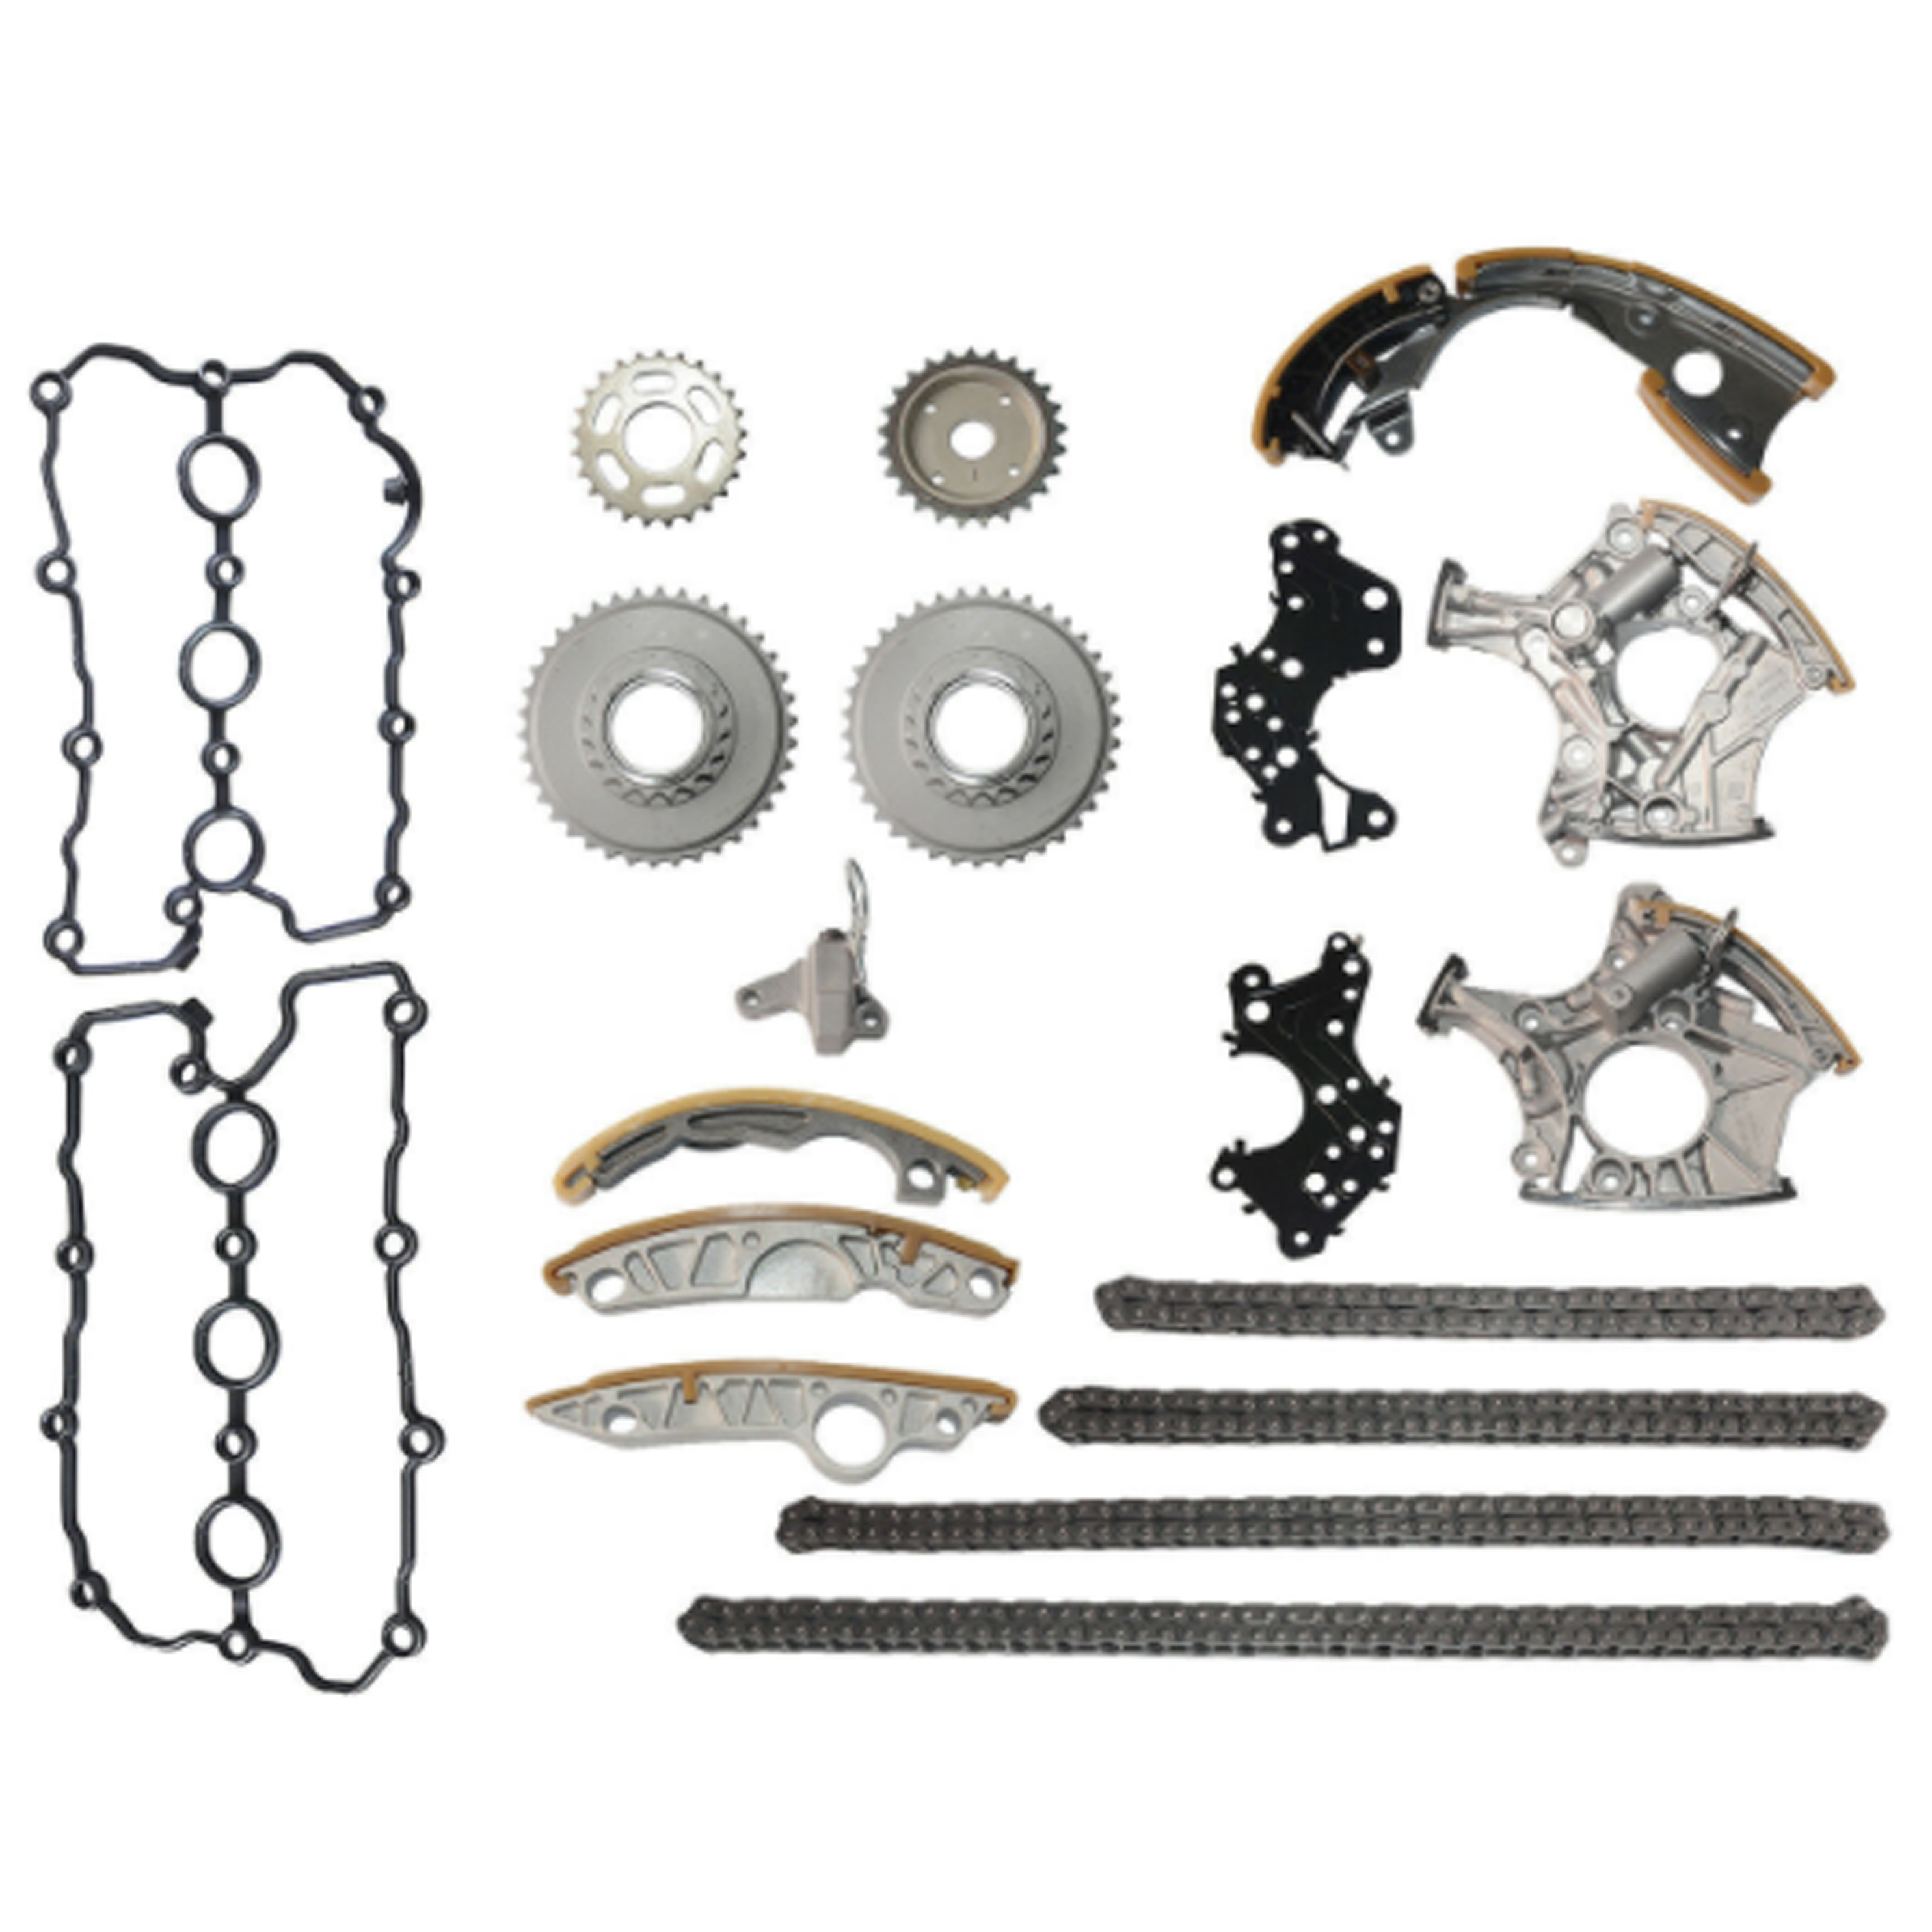 13 PCS For Audi A4 A6 2.4L V6 3.2L TIMING CHAIN GEAR KIT With CHAIN TERNSIONERS